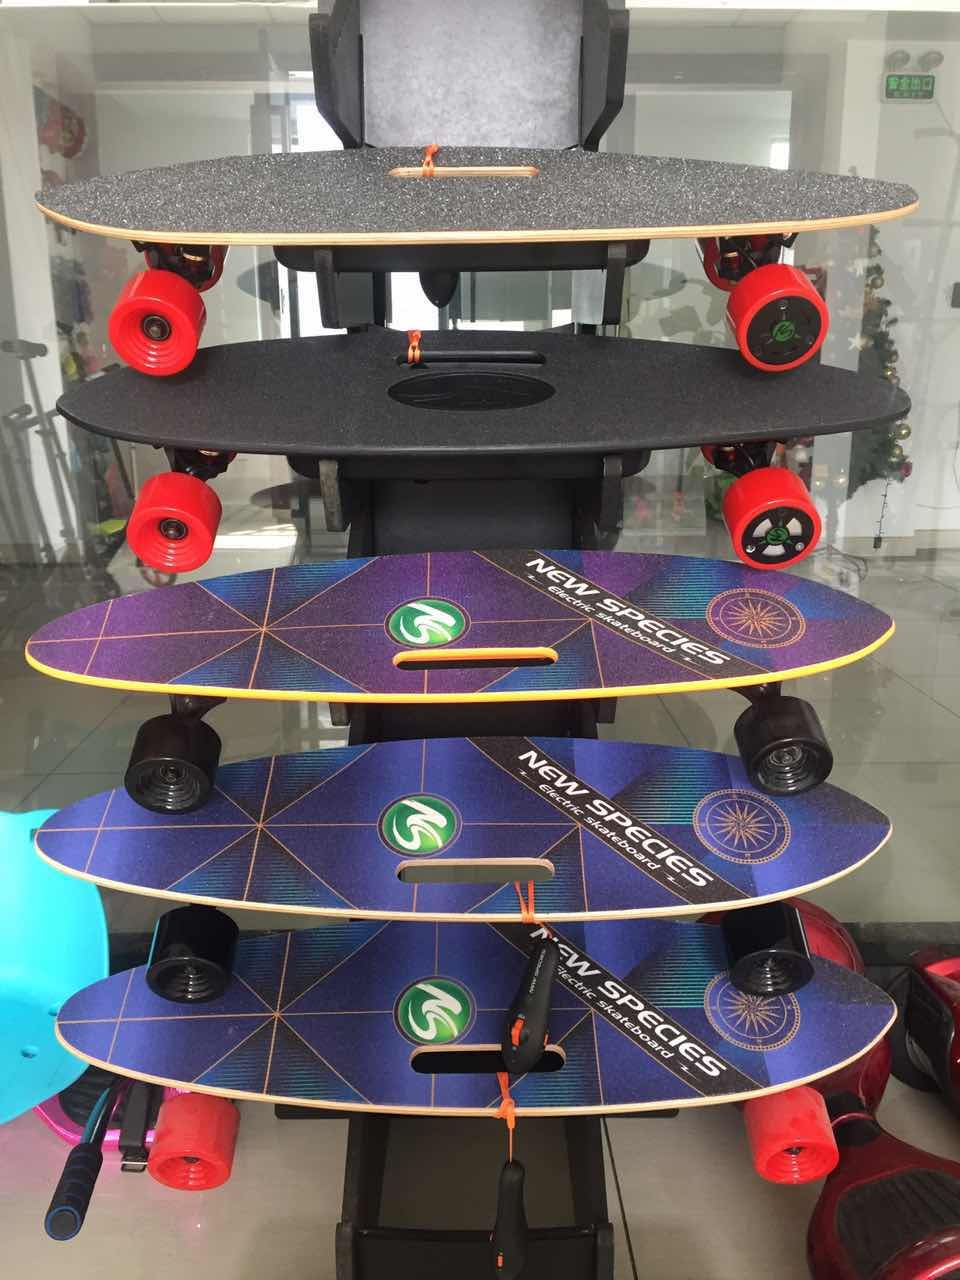 Fish electric skateboards